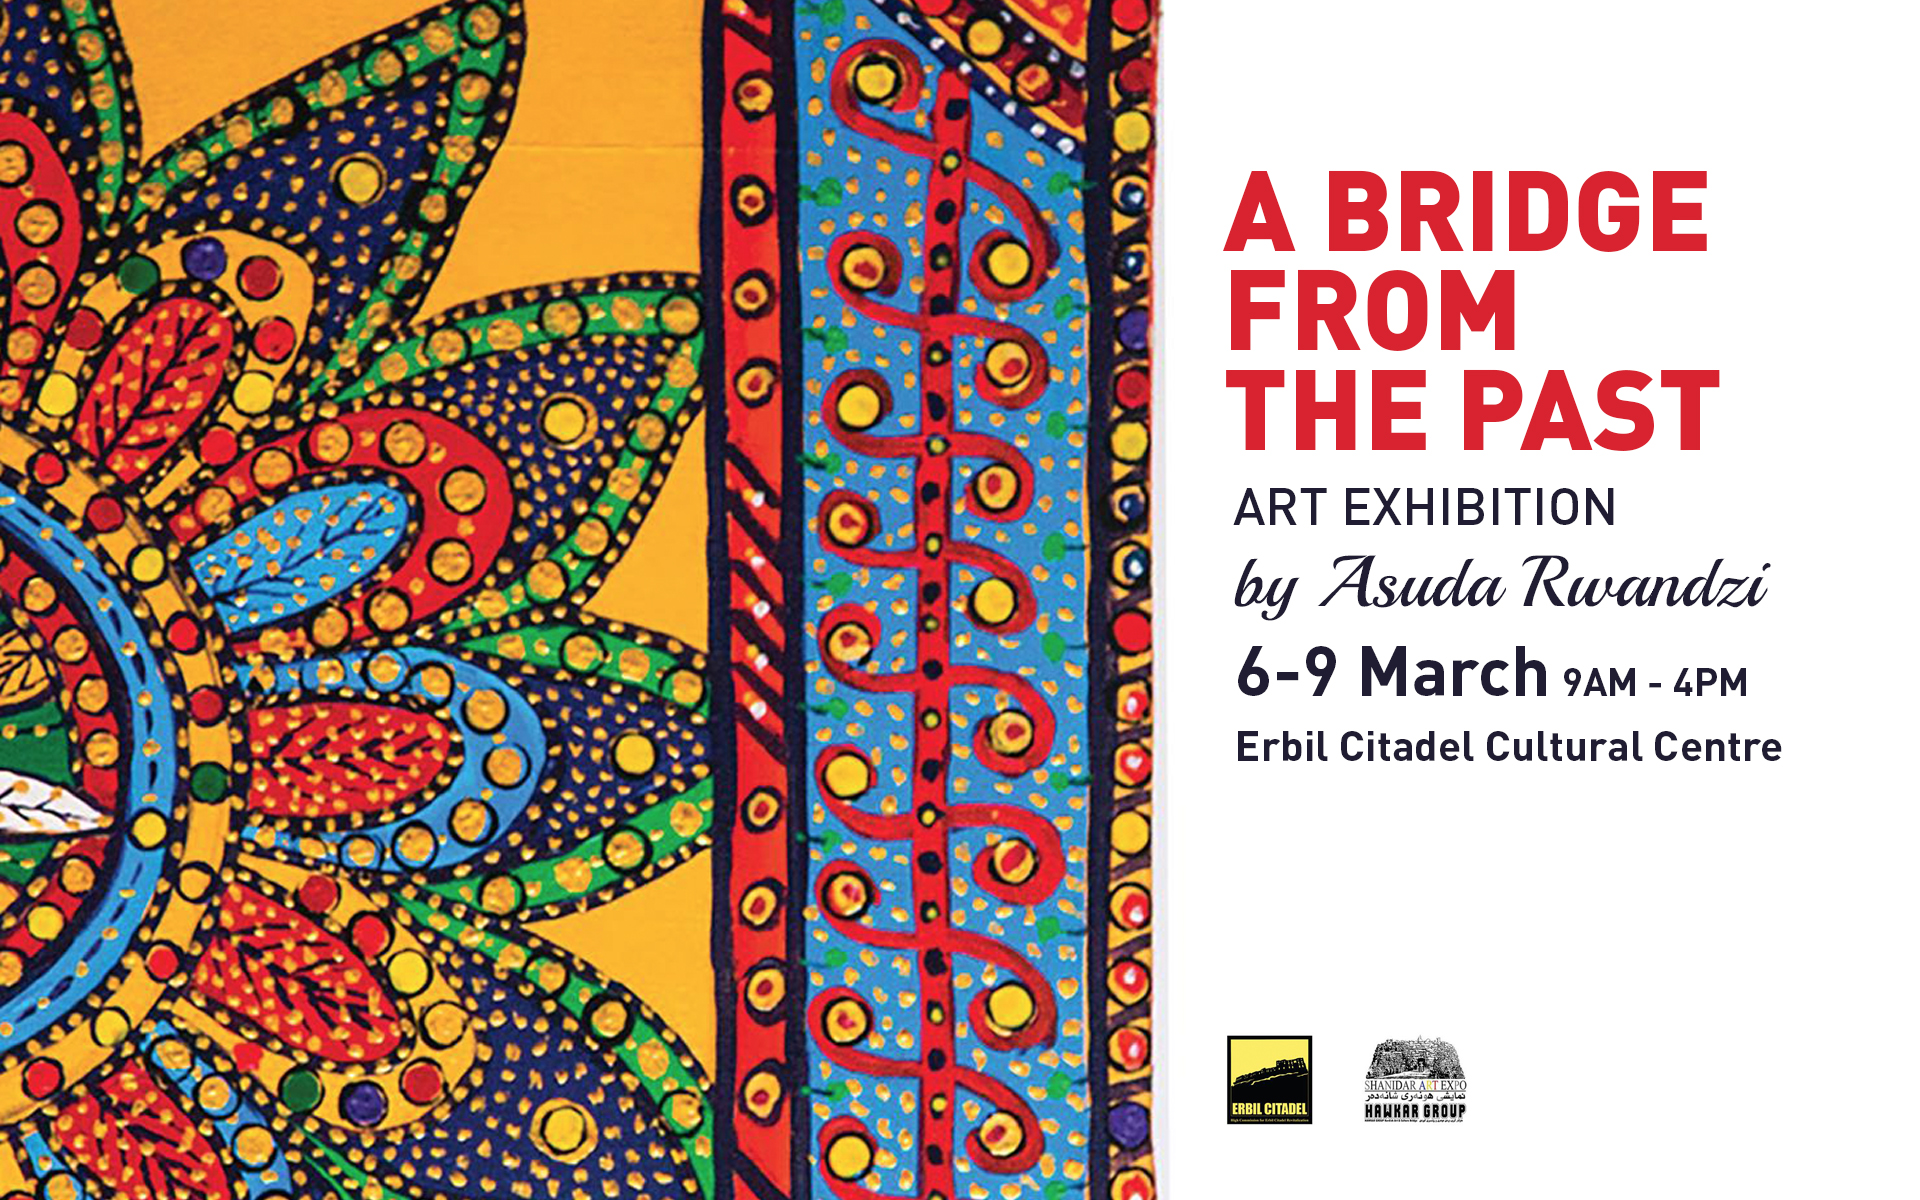 Lisa alex wedding ceremony in erbil erbil lifestyle a bridge from the past art exhibition by asuda rwandzi 6 9 march fandeluxe Images